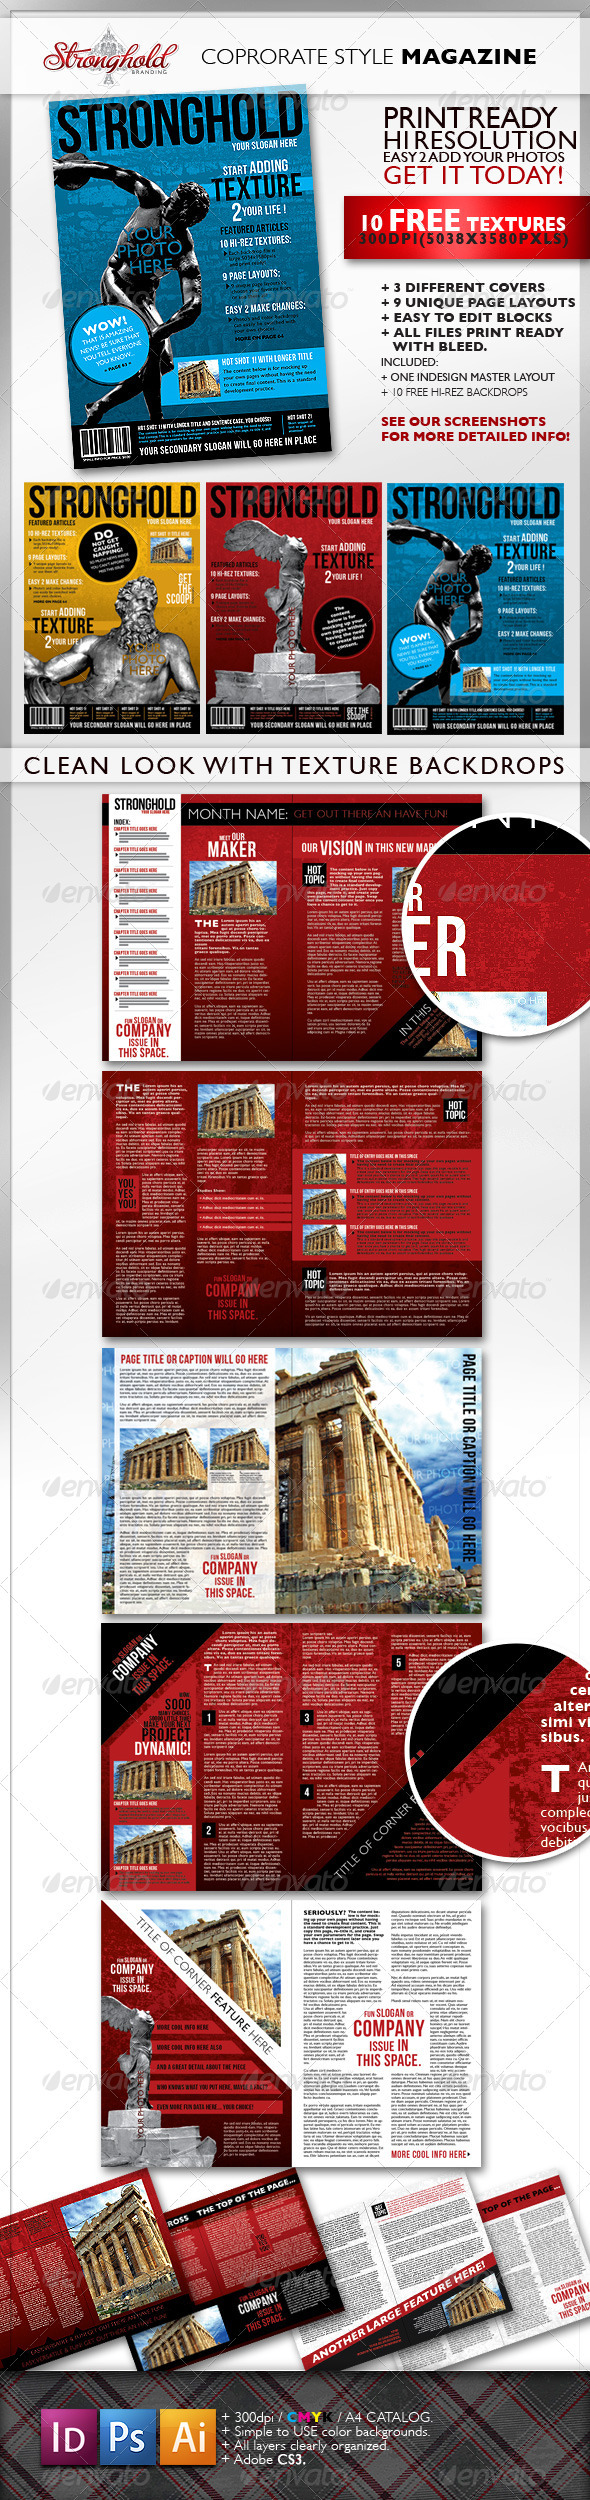 GraphicRiver Textured Corporate Magazine Template 1616360